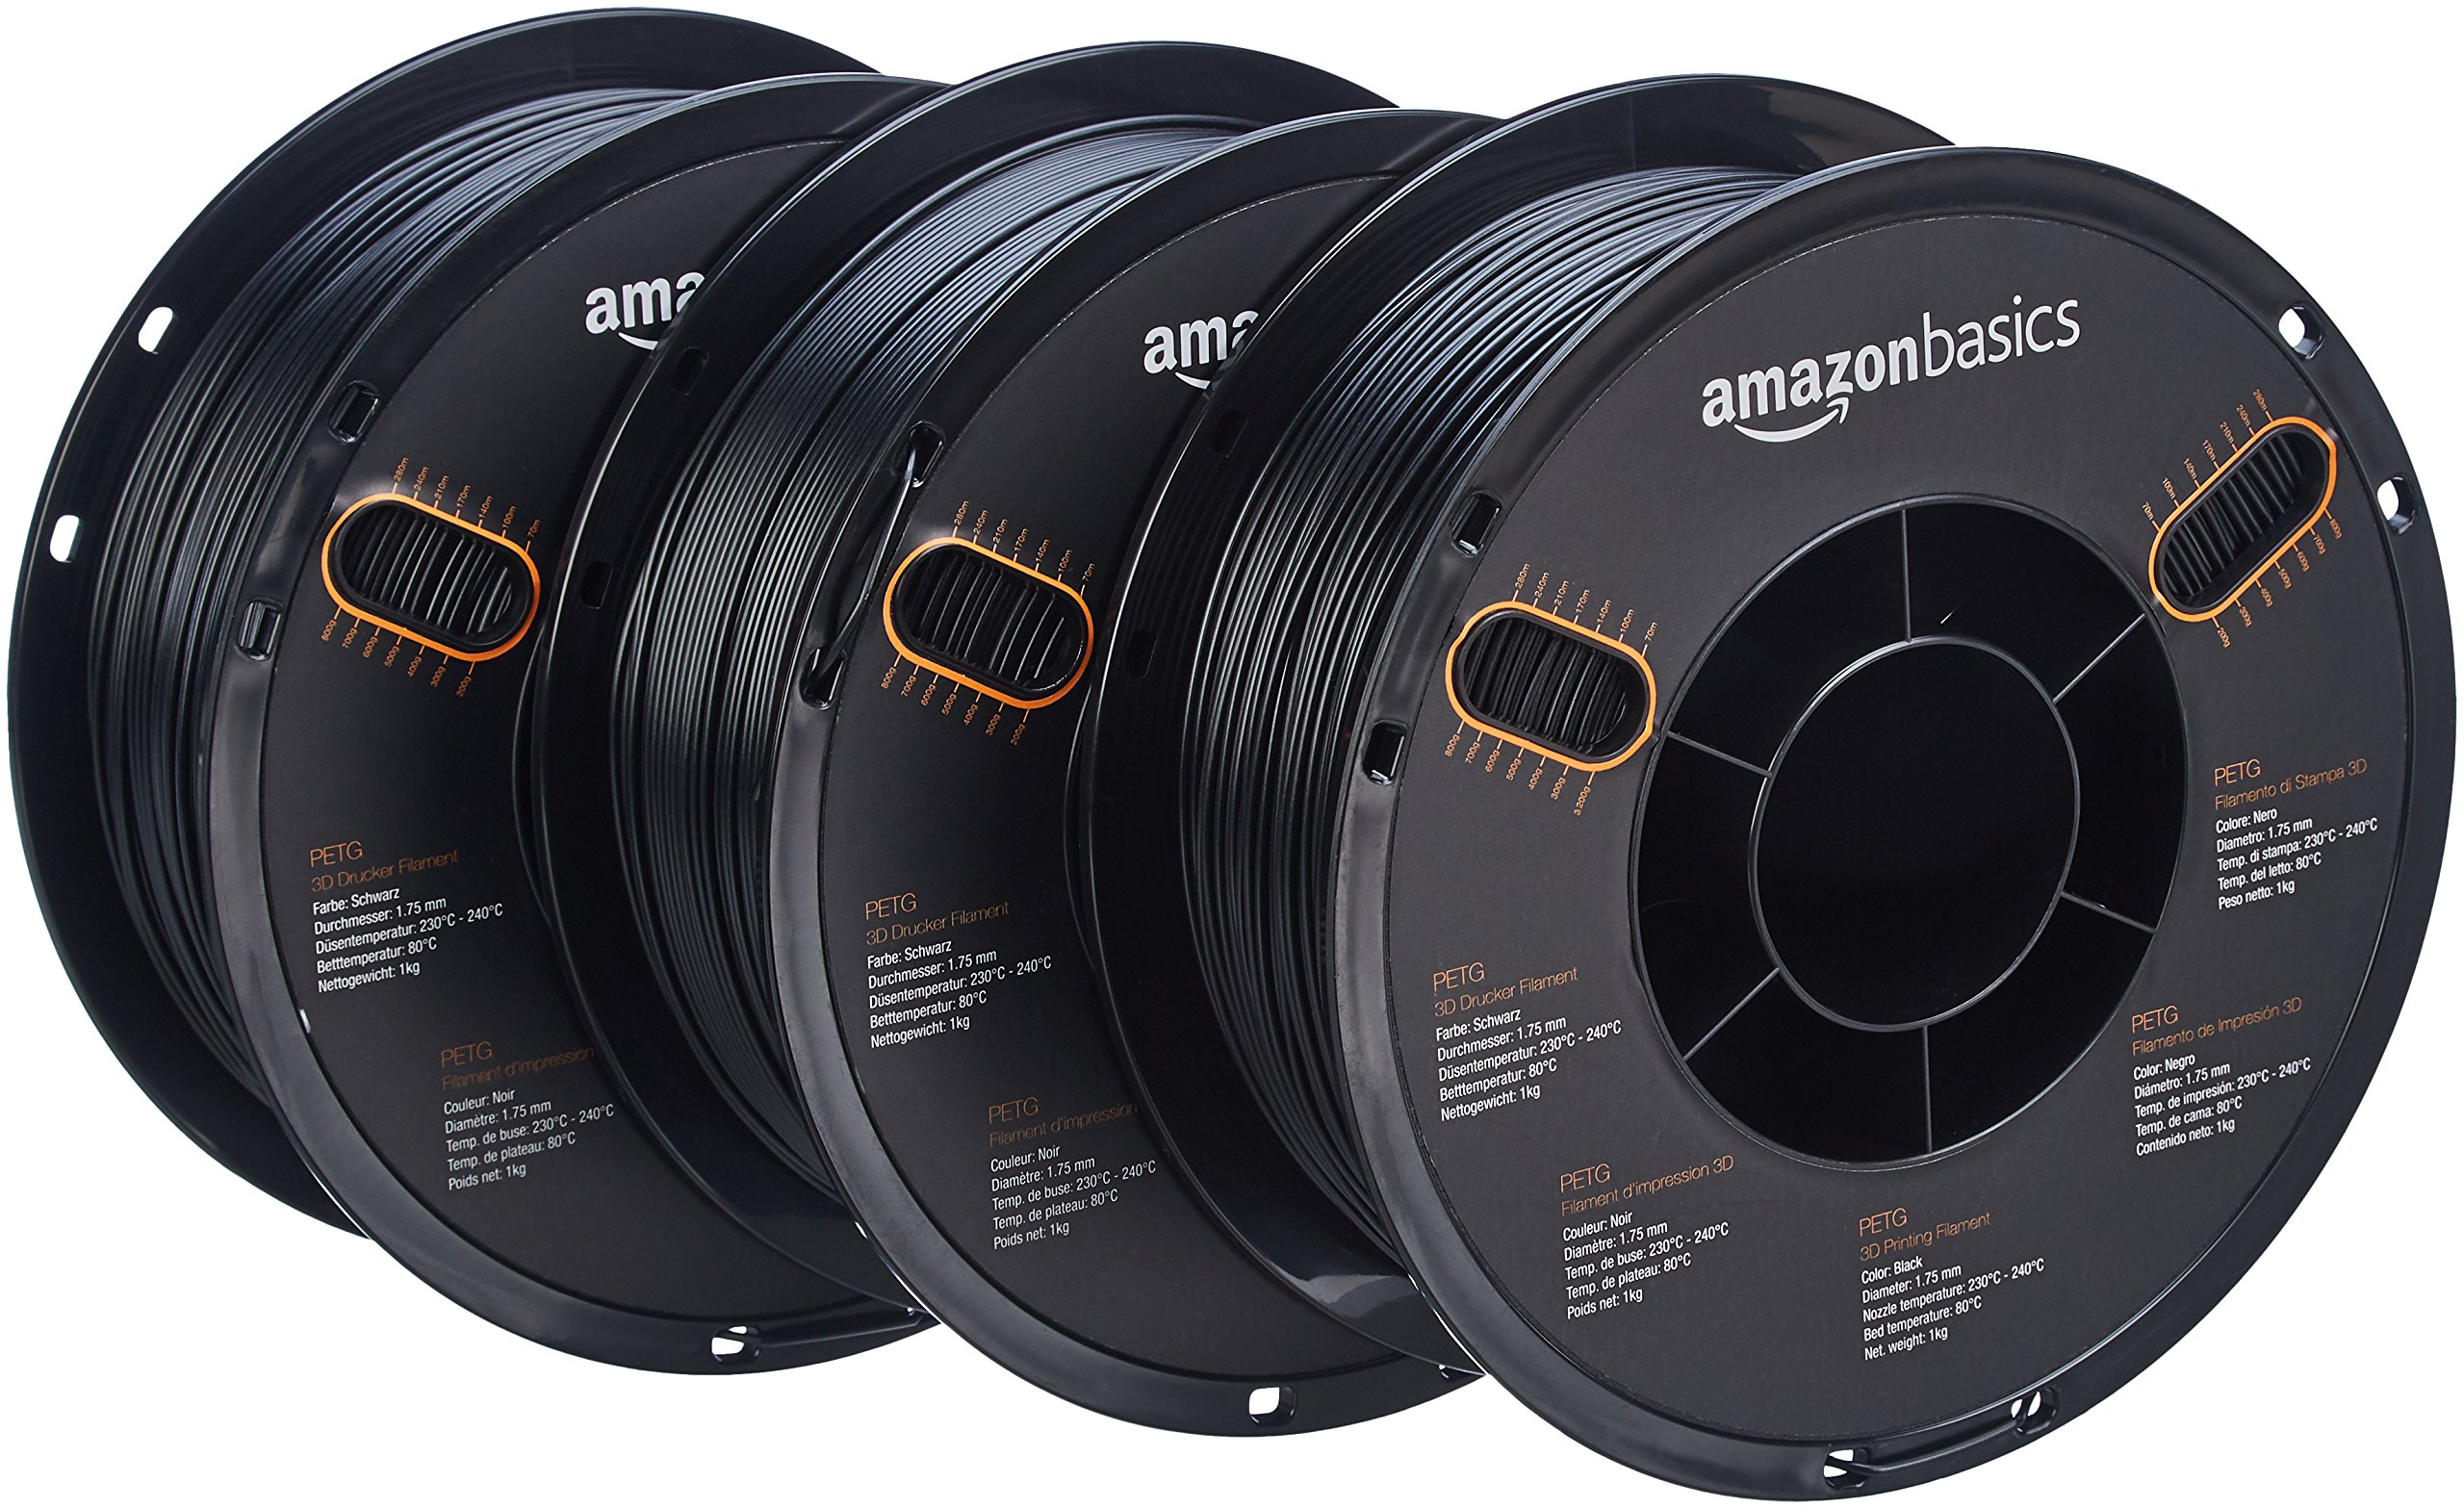 AmazonBasics PETG 3D Printer Filament, 1.75mm, Black, 1 kg Spool, 3 Spools by AmazonBasics